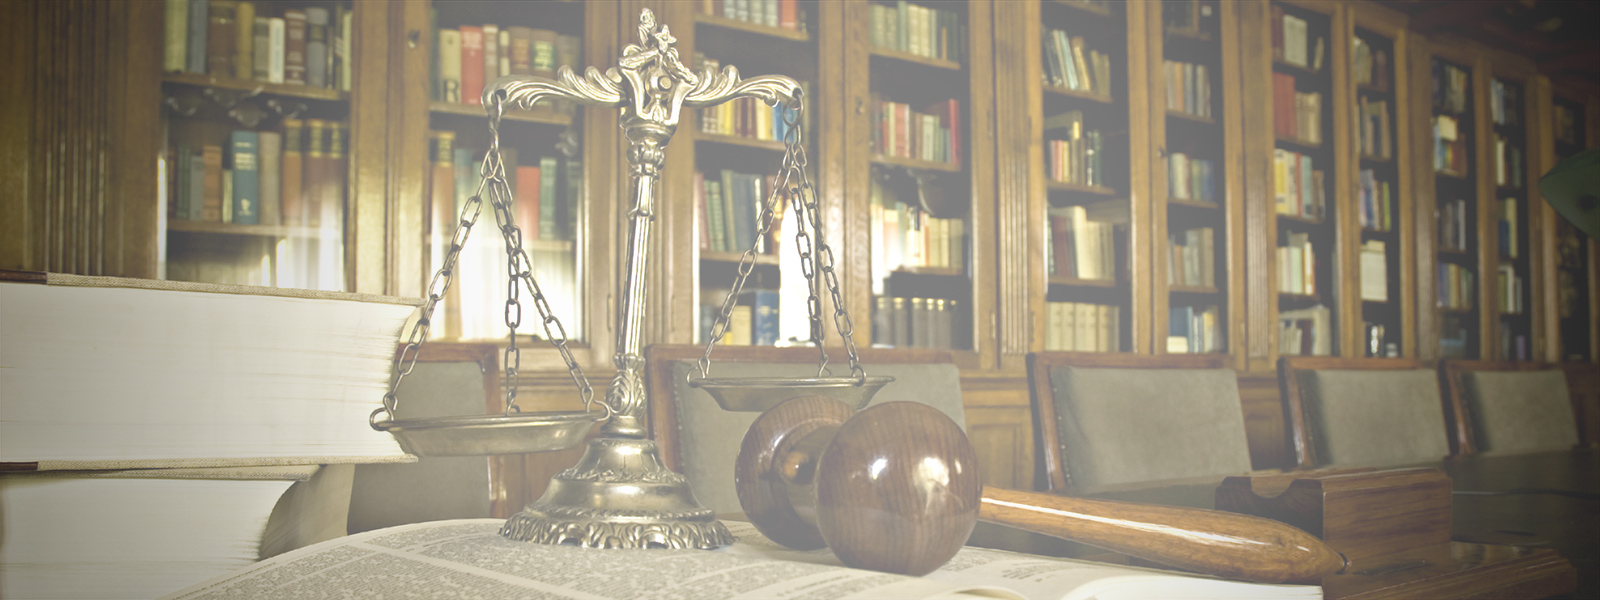 The scales of justice sit surrounded by a gavel and law books